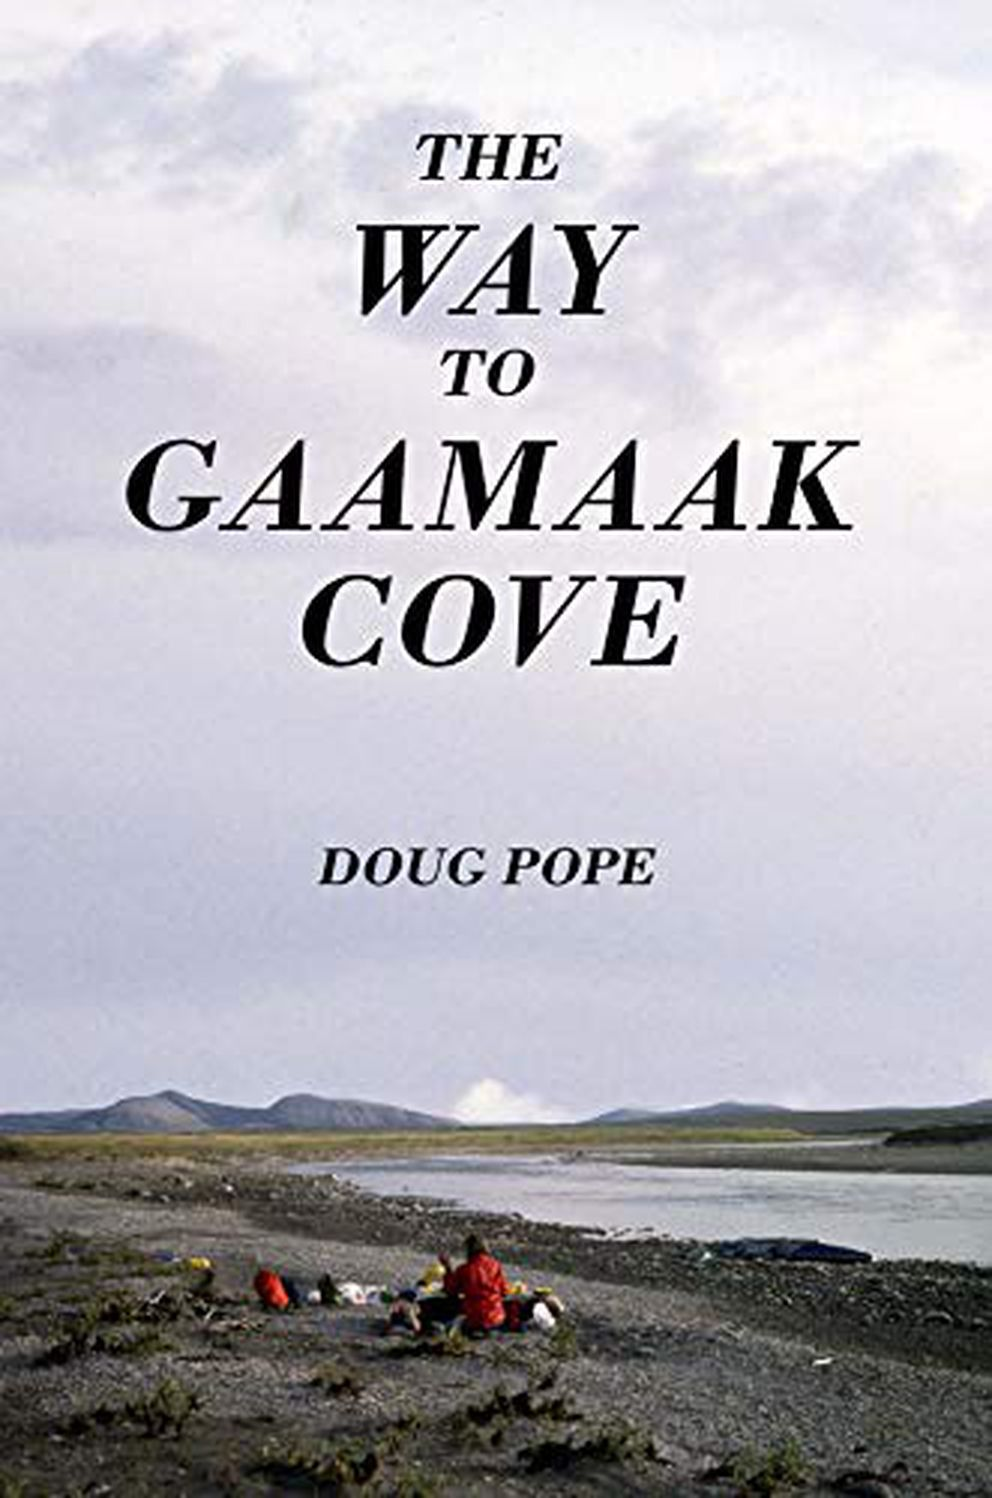 'The Way to Gaamaak Cove, ' by Doug Pope